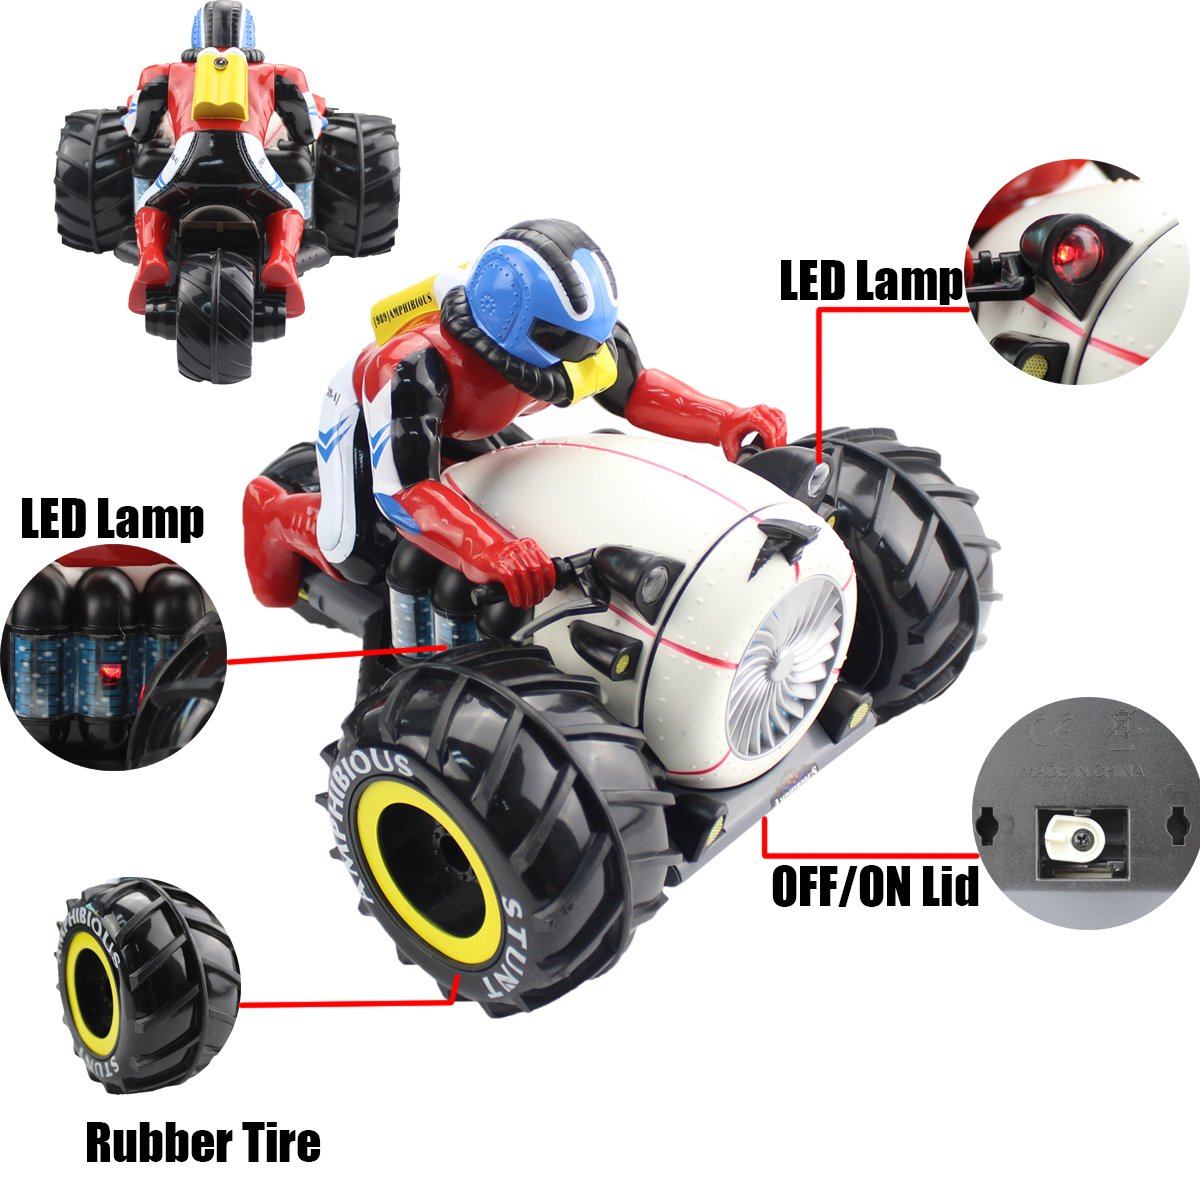 Fistone RC Car High Speed Spinning Stunt Car 2.4G Remote Control Amphibious Motorcycle Drives on Land & Water Vehicle Toys for Kids